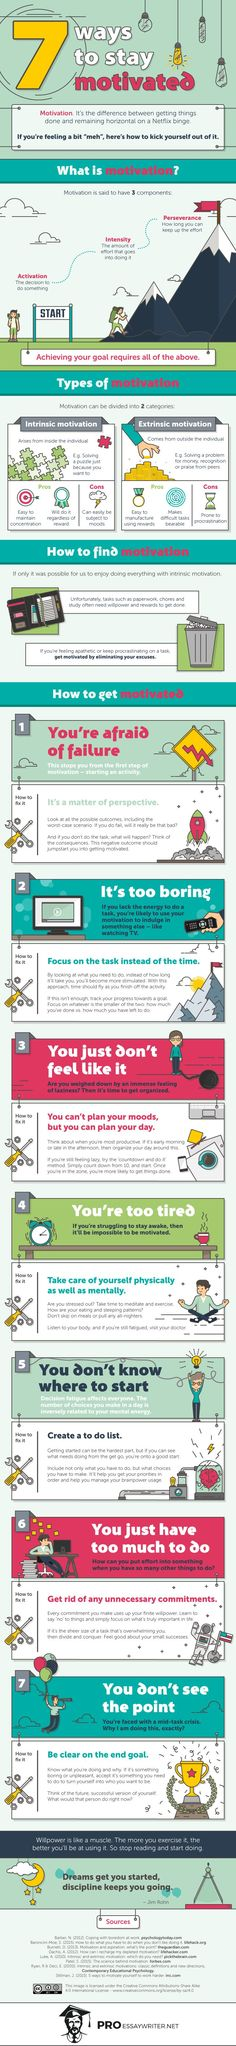 How Do You Find And Keep Your Motivation At Work? #infographic